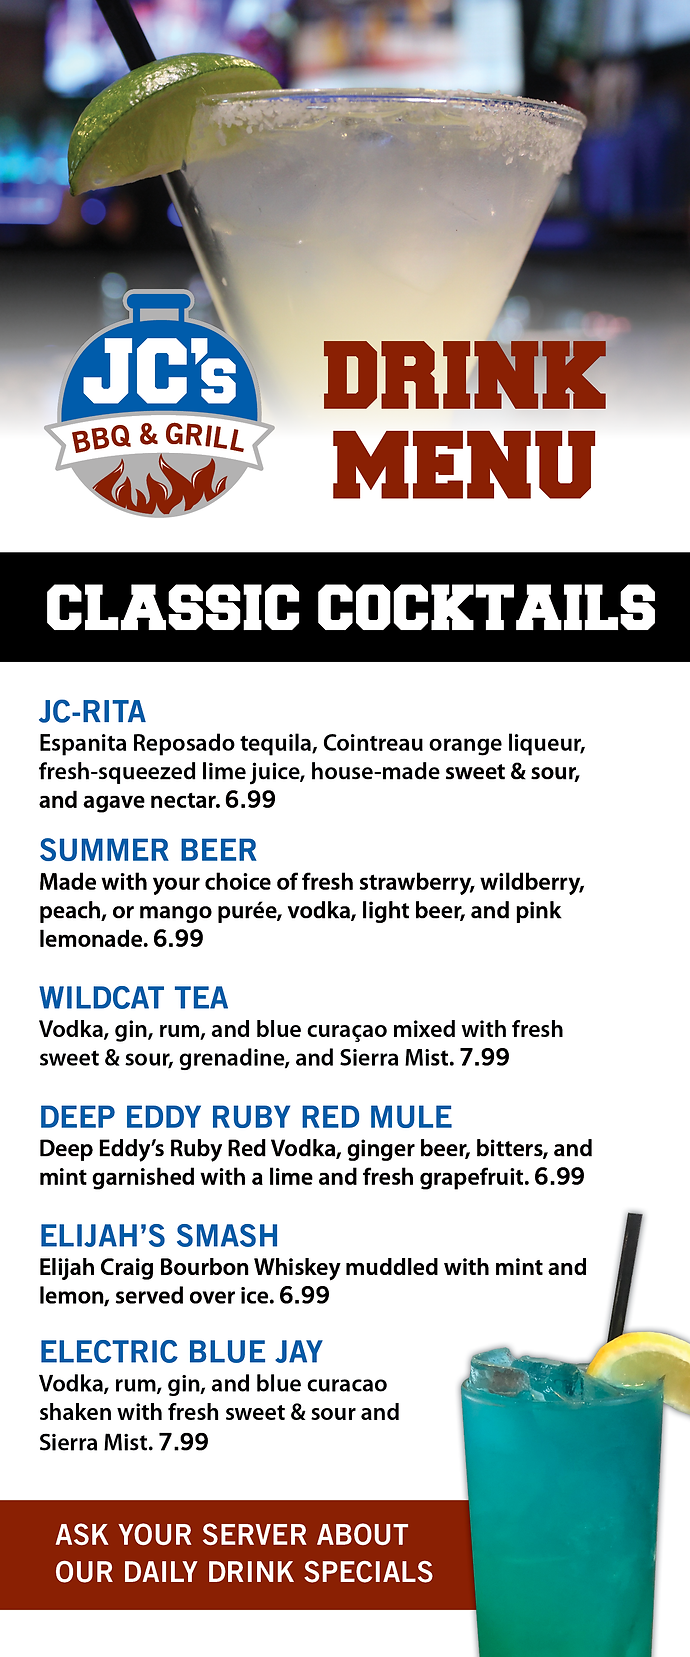 Drink Menu Aug 2020.png